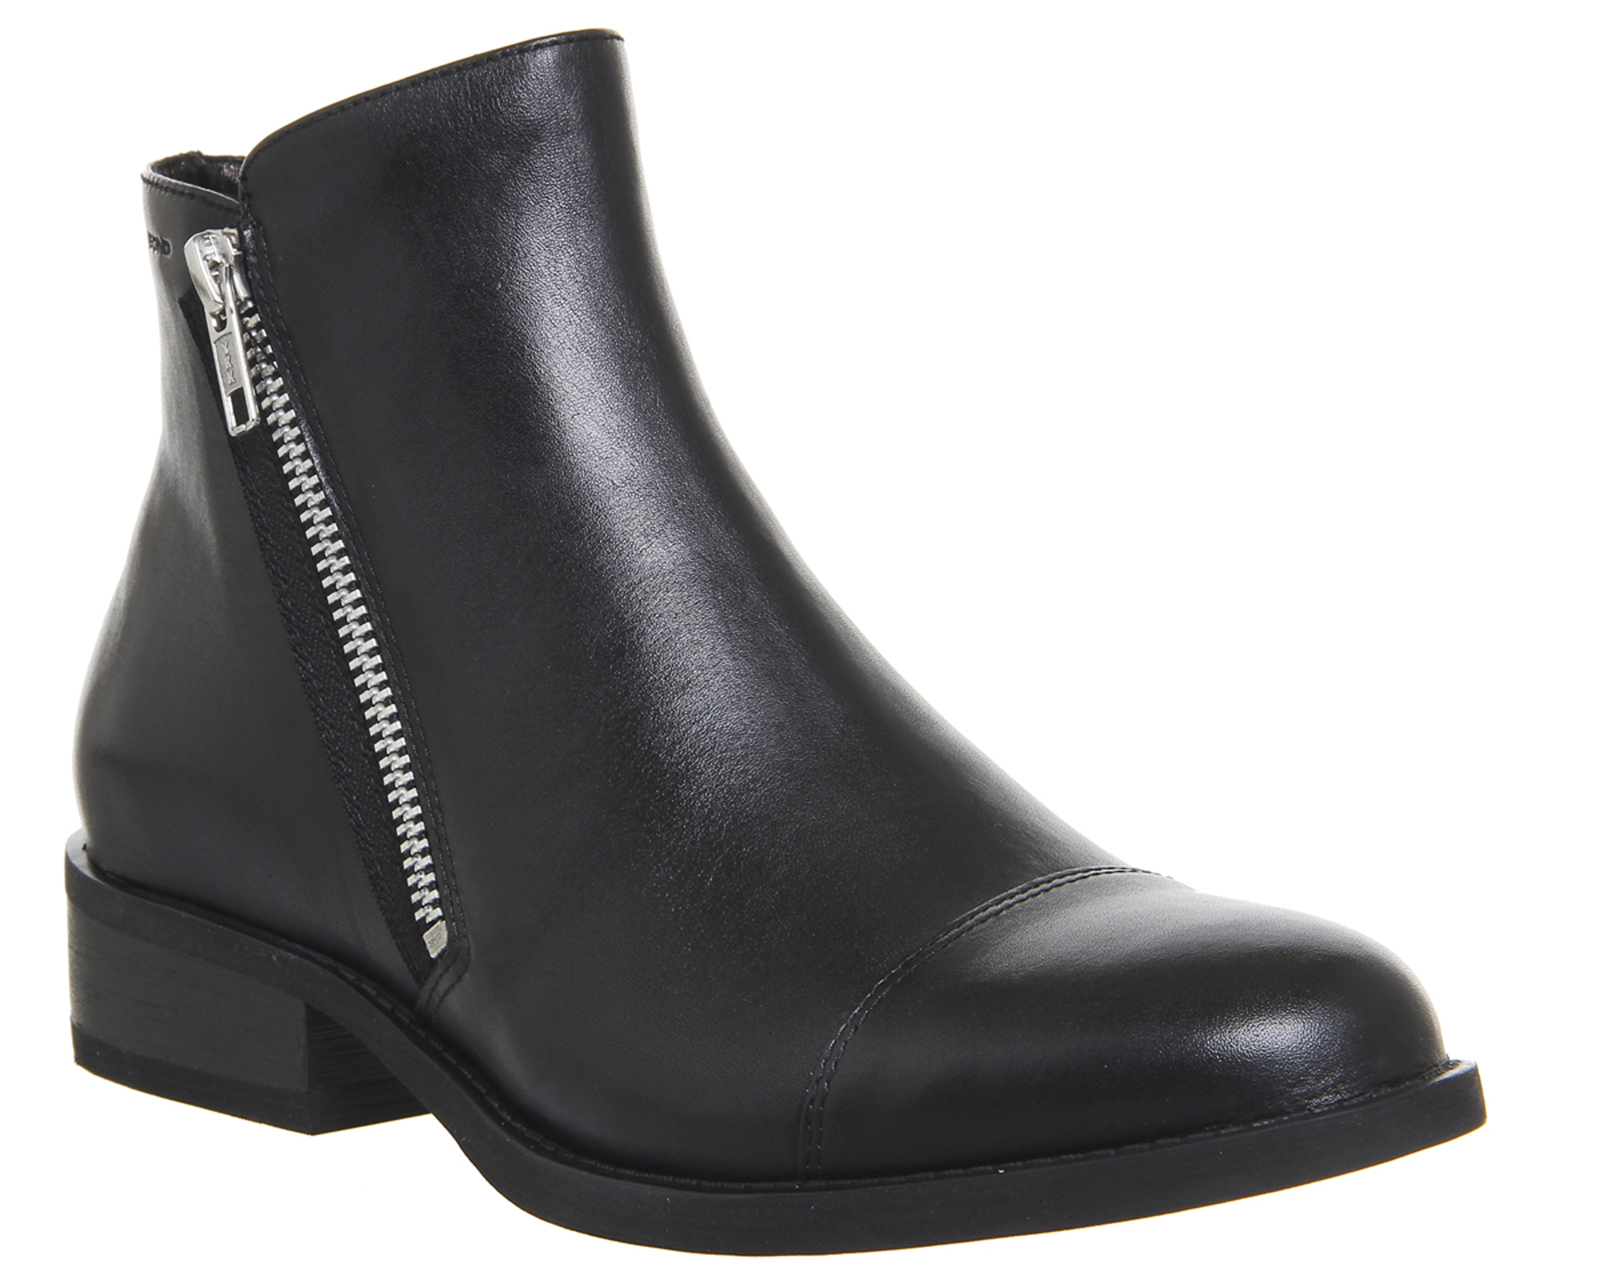 womens vagabond cary zip boots black leather boots ebay